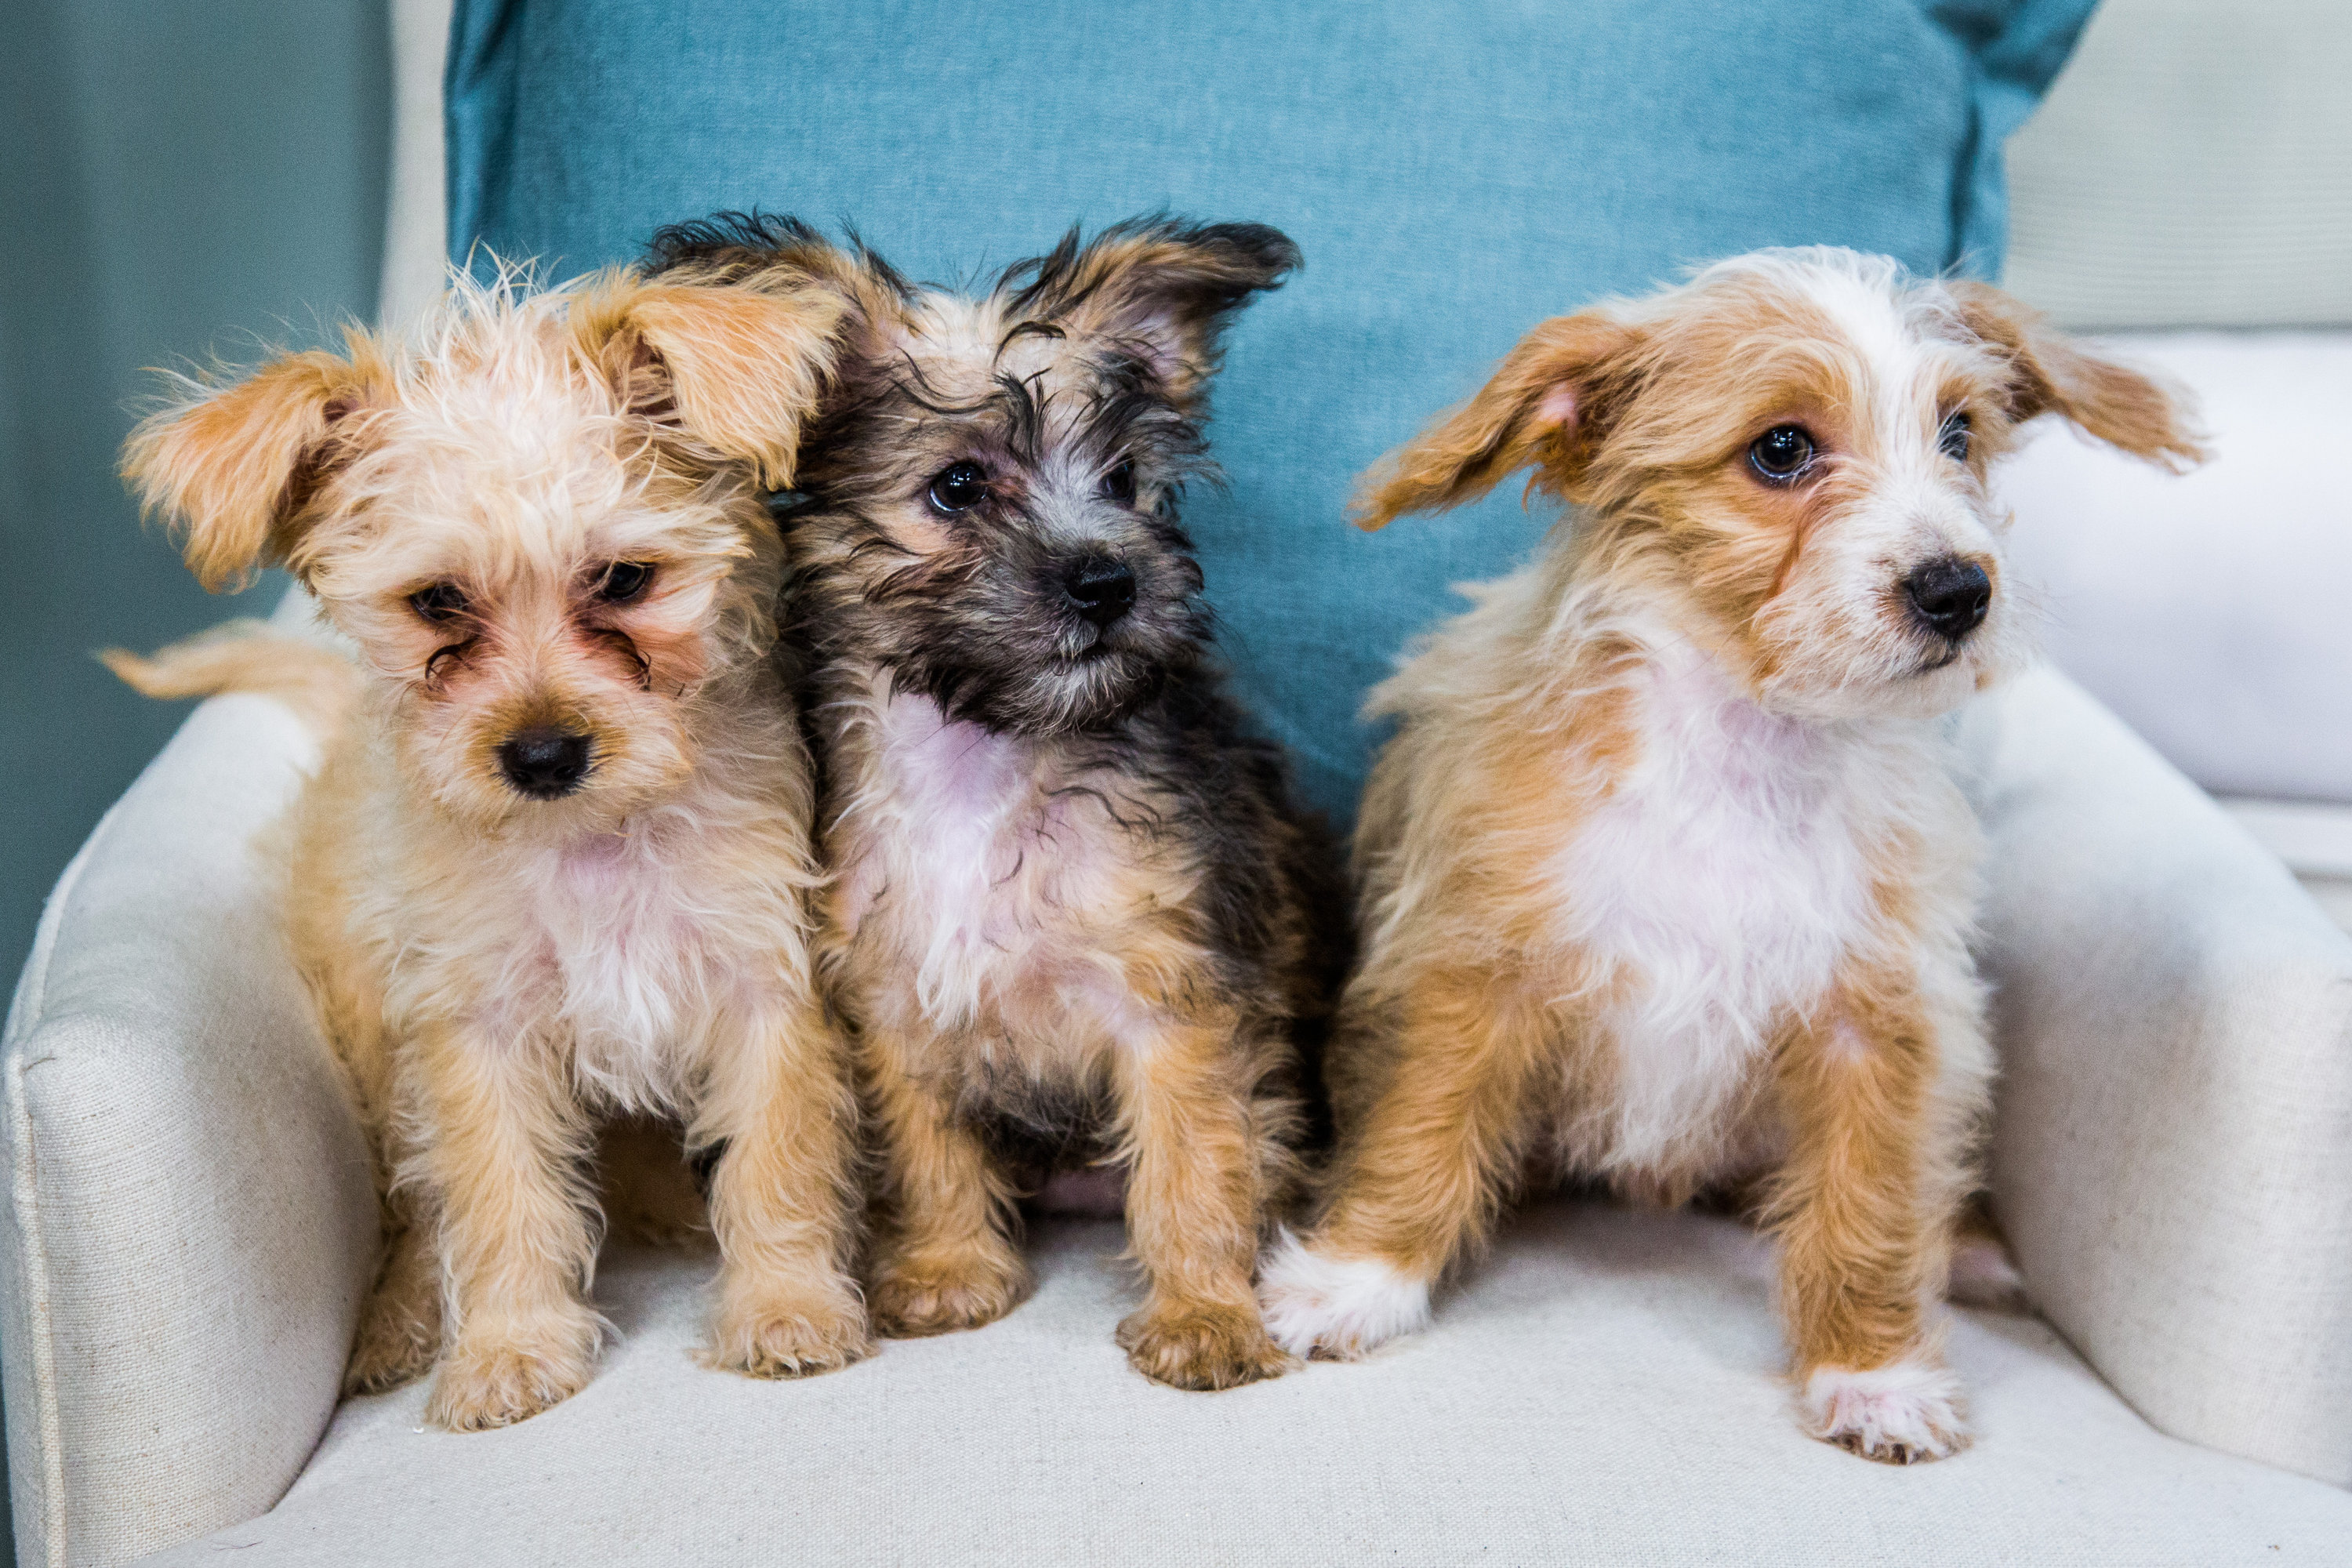 Three Puppies - Adoption Ever After - Home & Family - Video